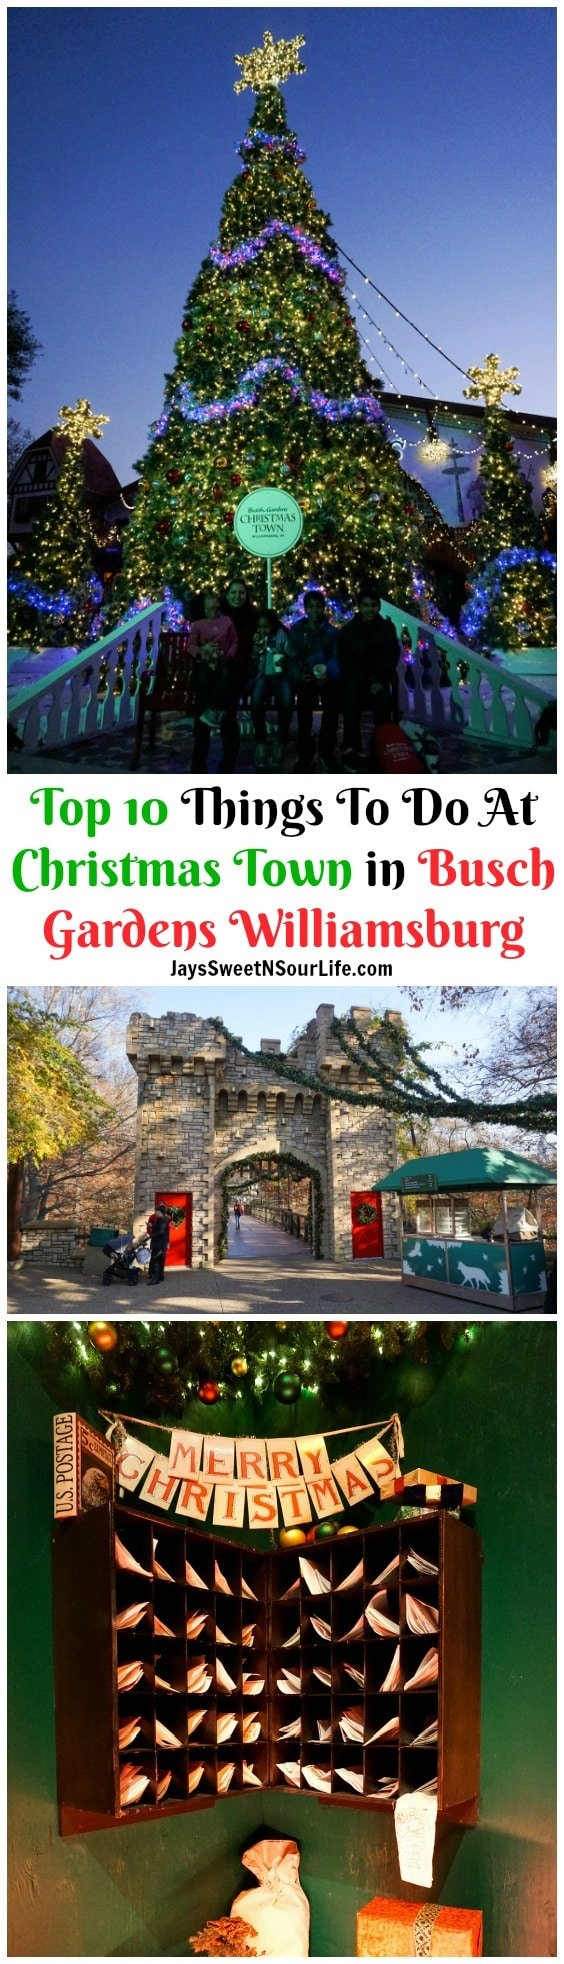 Top 10 Things To Do At Christmas Town In Busch Gardens Williamsburg Jays Sweet N Sour Life